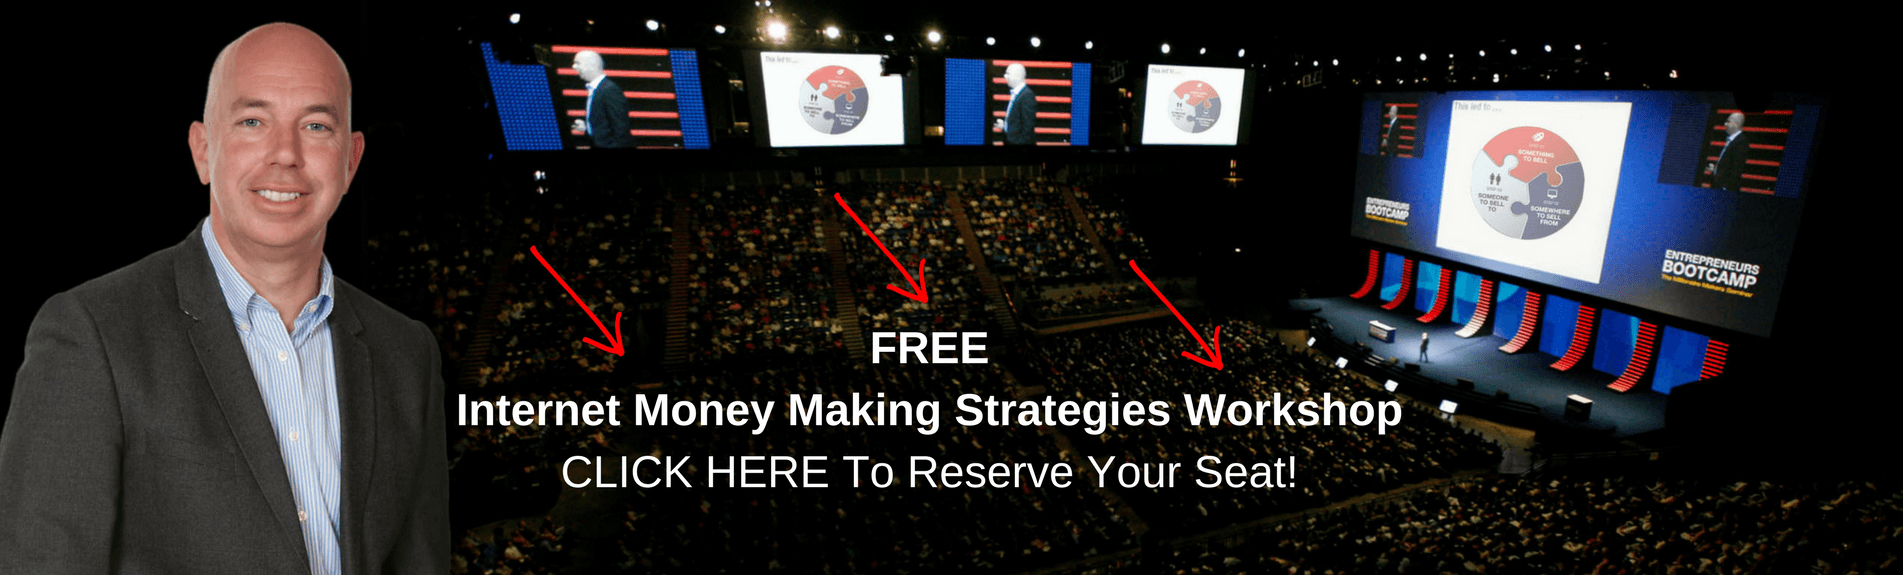 FREE Internet Money Making Strategies Workshop